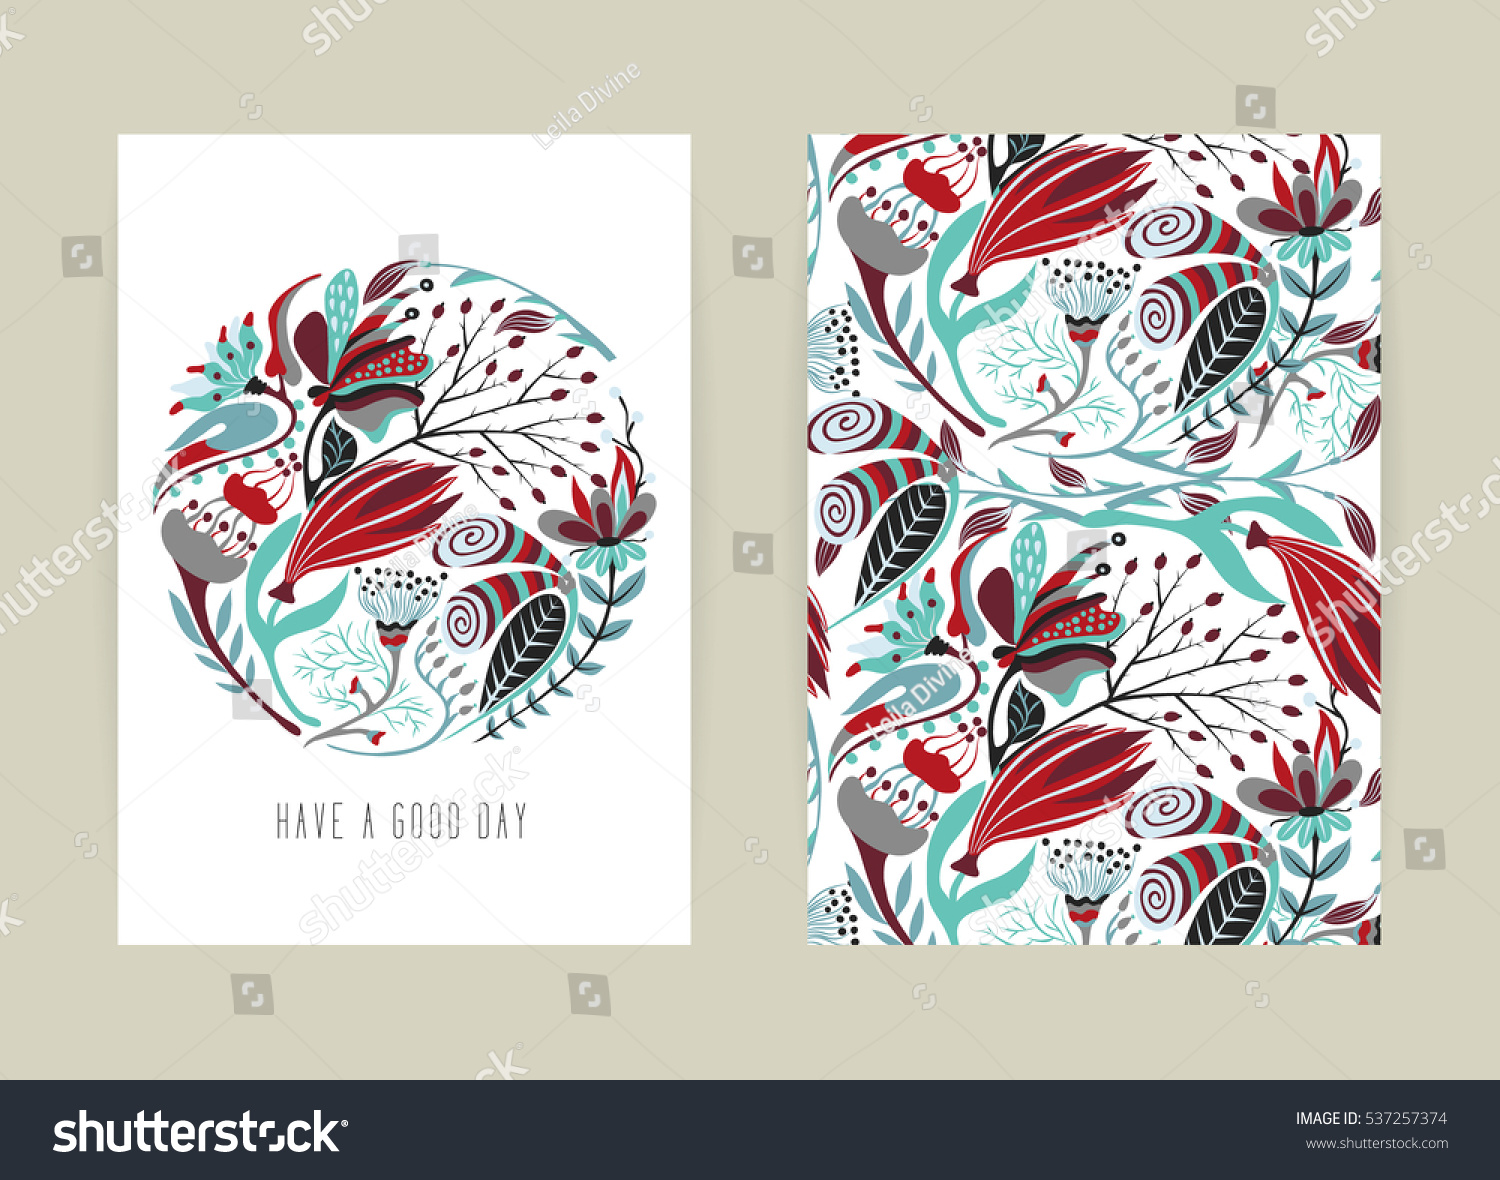 Book Cover Design Flower : Cover design floral pattern hand drawn stock vector